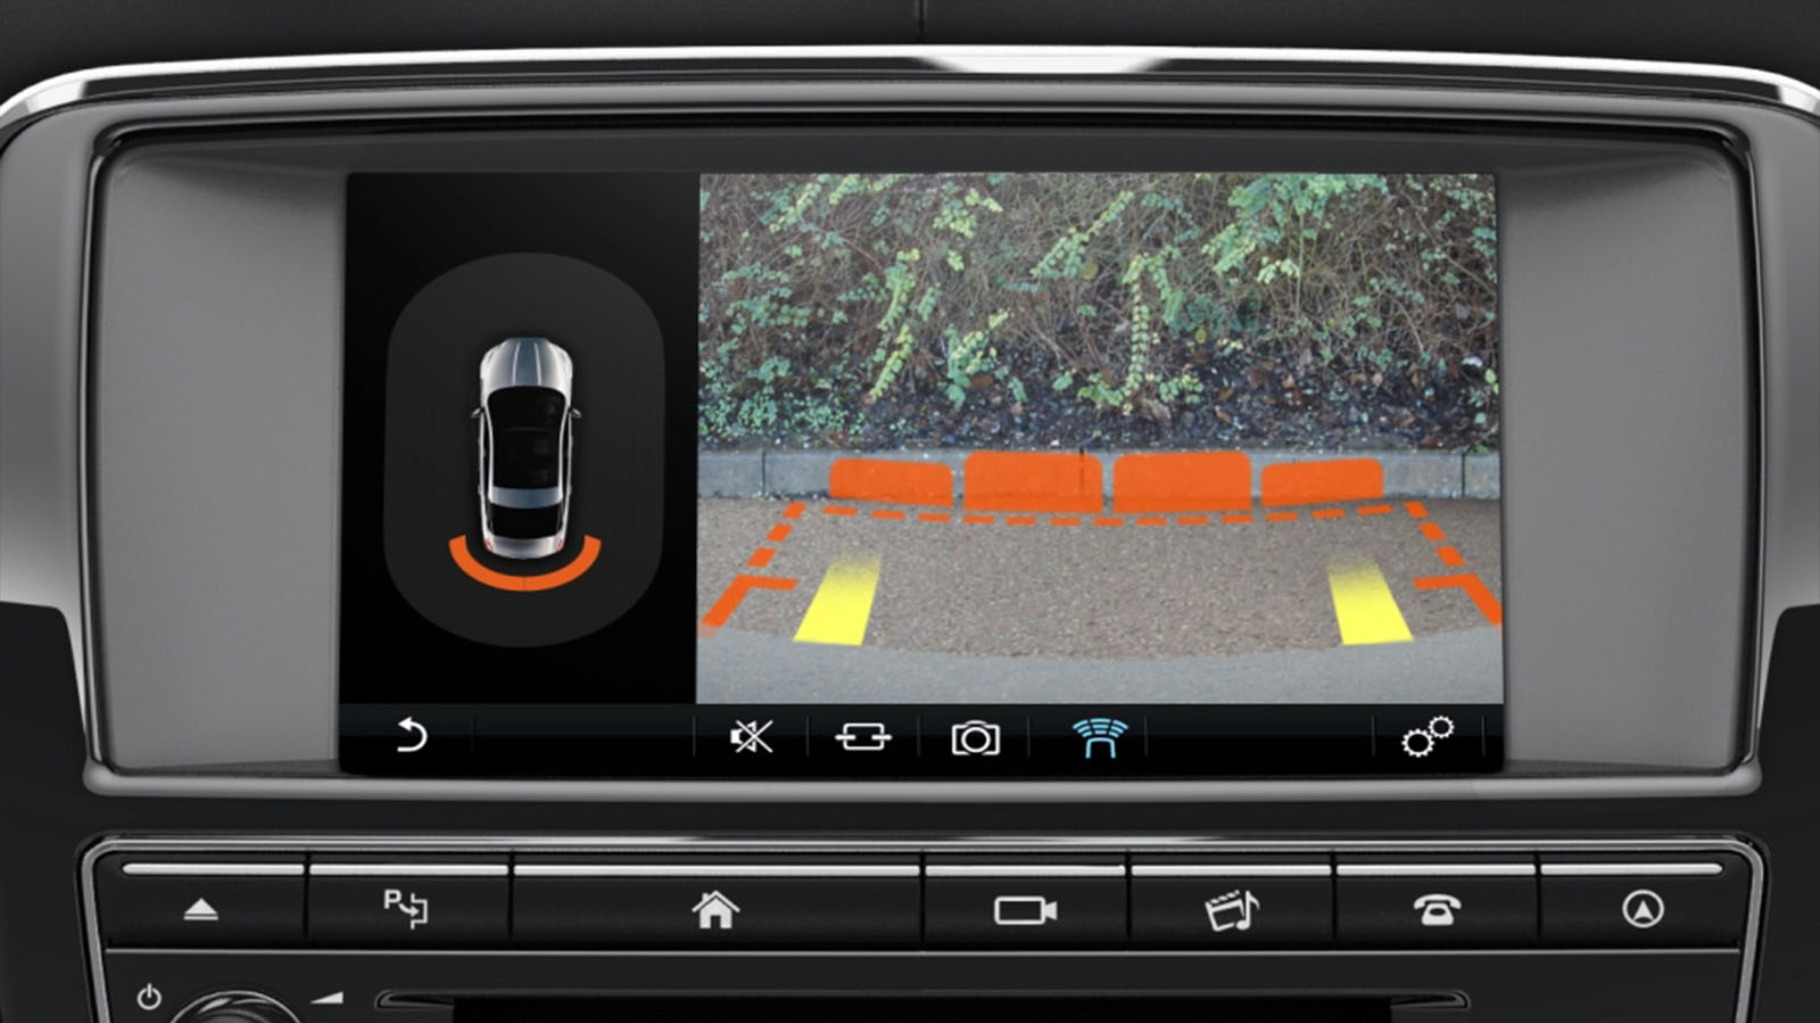 Jaguar XJ's InControl Touch Pro: Parking Aid System information video.